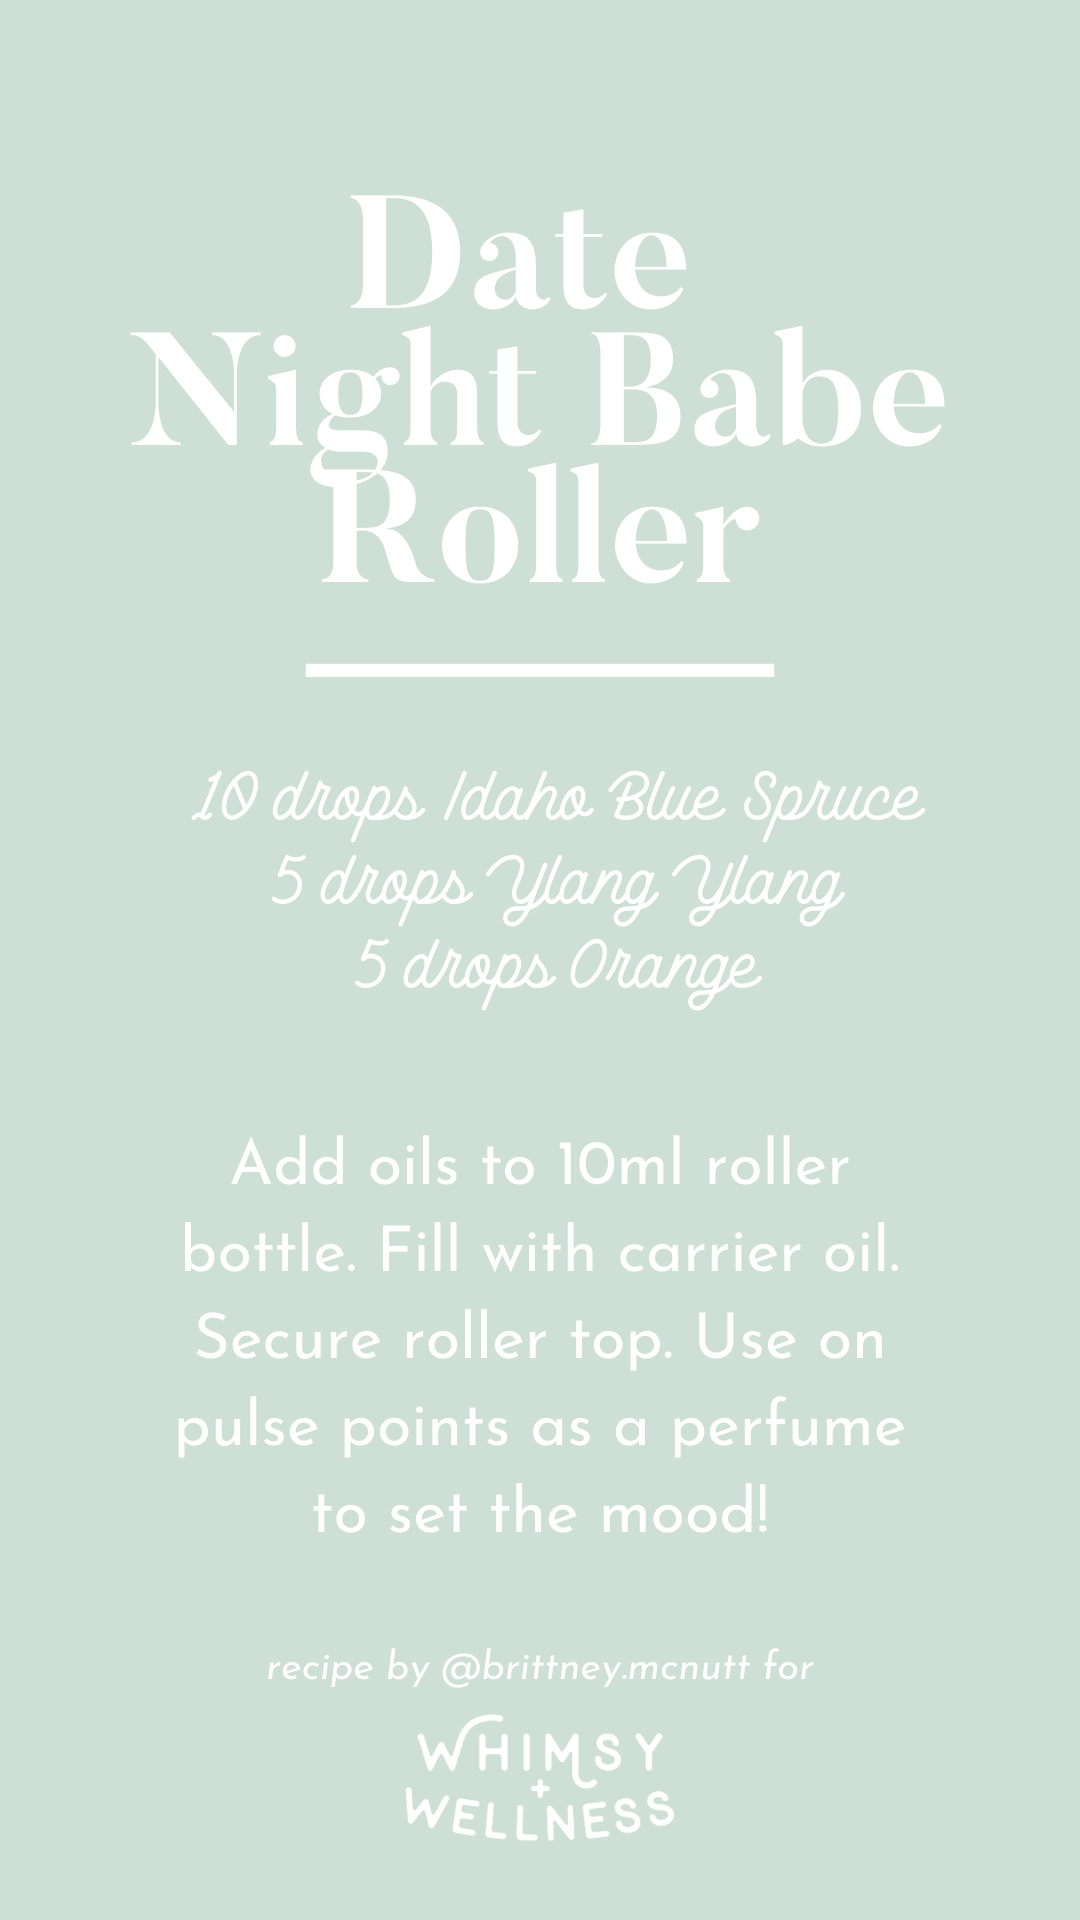 Date night babe roller recipe blend using Young Living essential oils